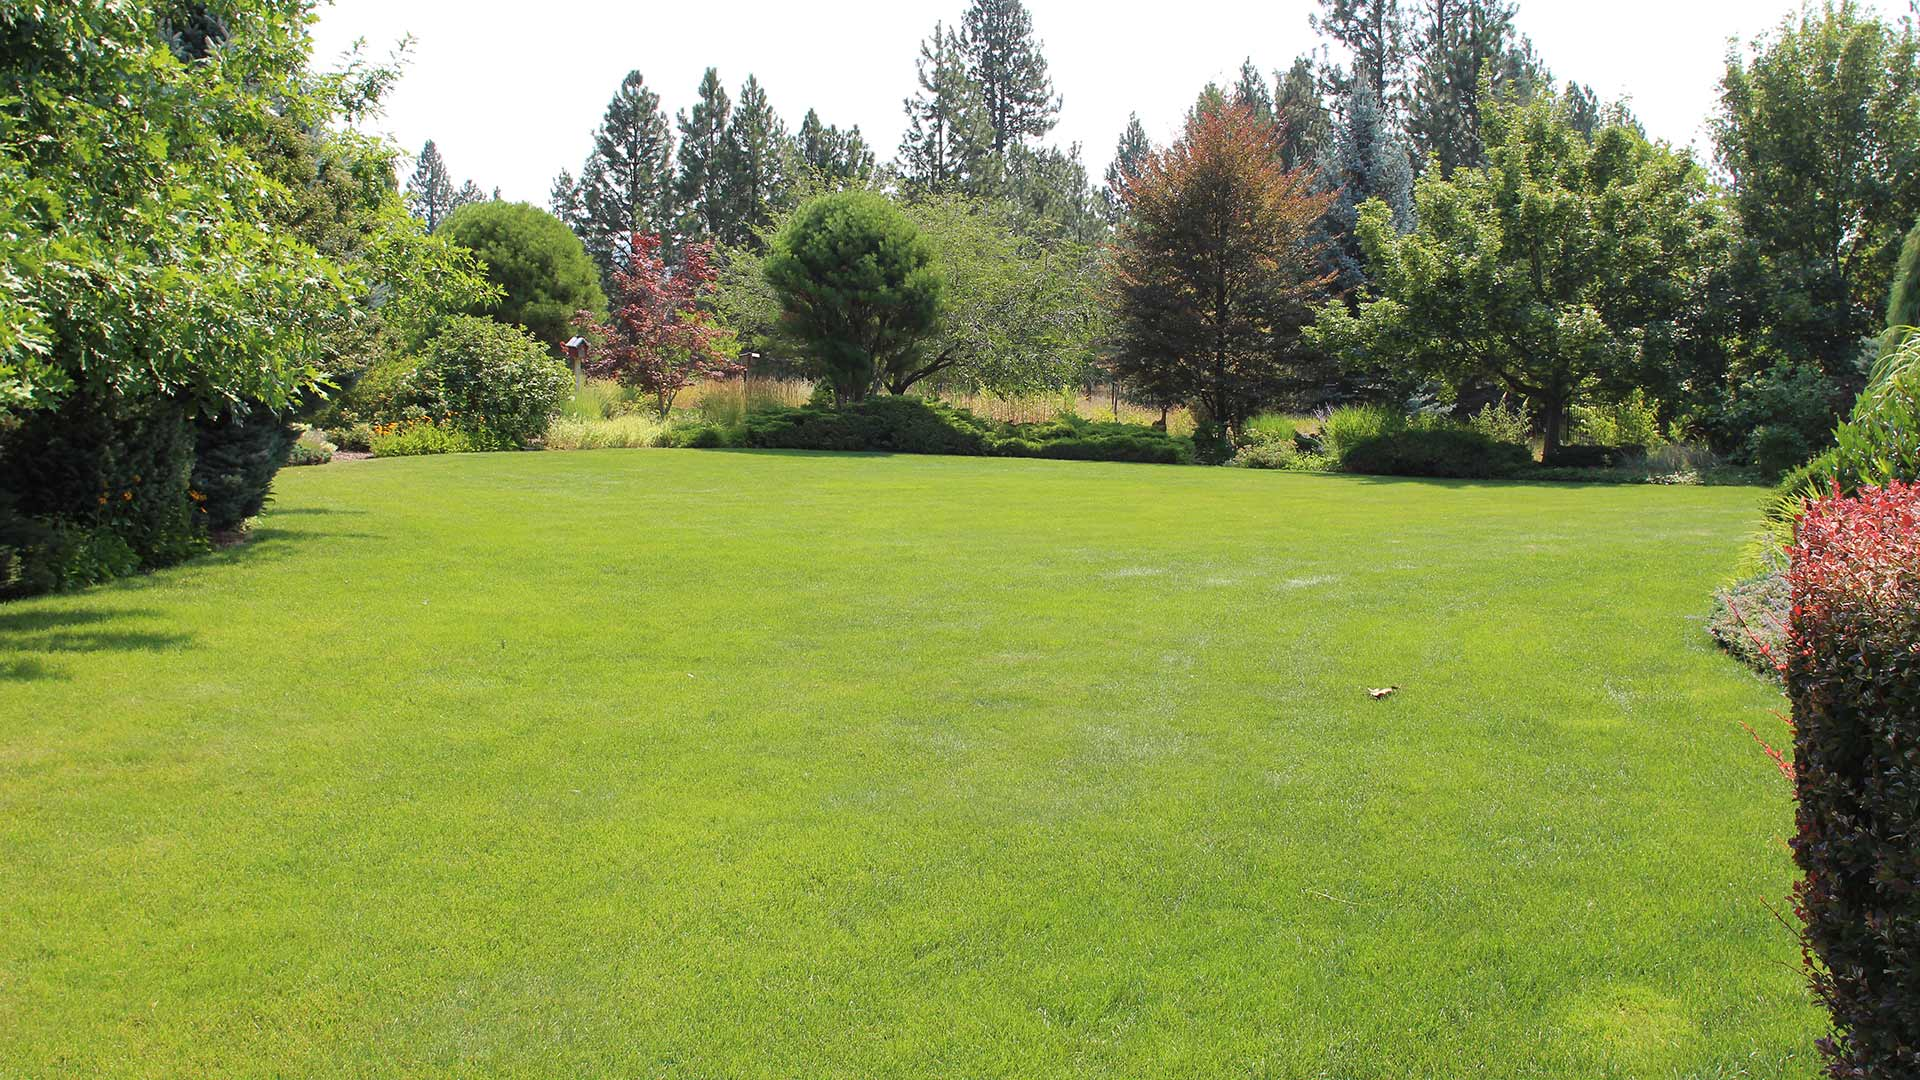 Healthy, green lawn and landscaping in Veradale, WA.